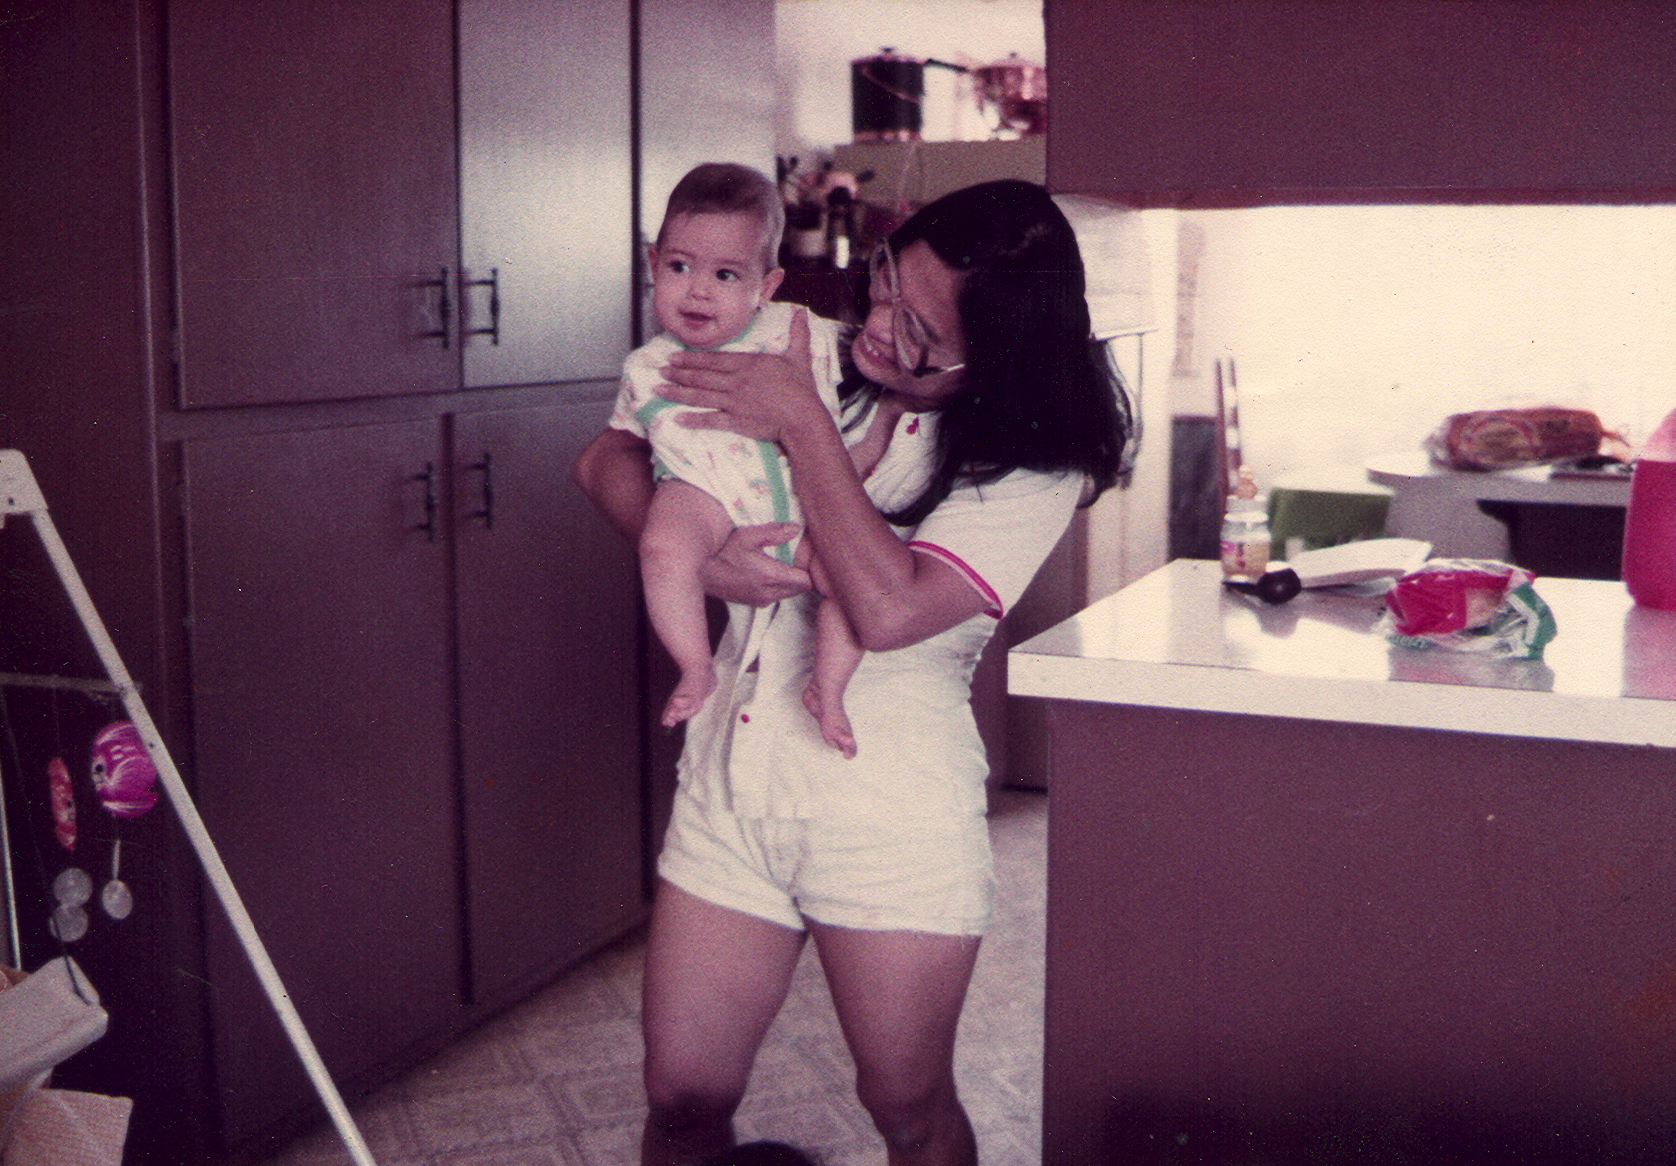 c_William-Cox__Jessica_Cox_as_a_baby_with_her_mother.jpg